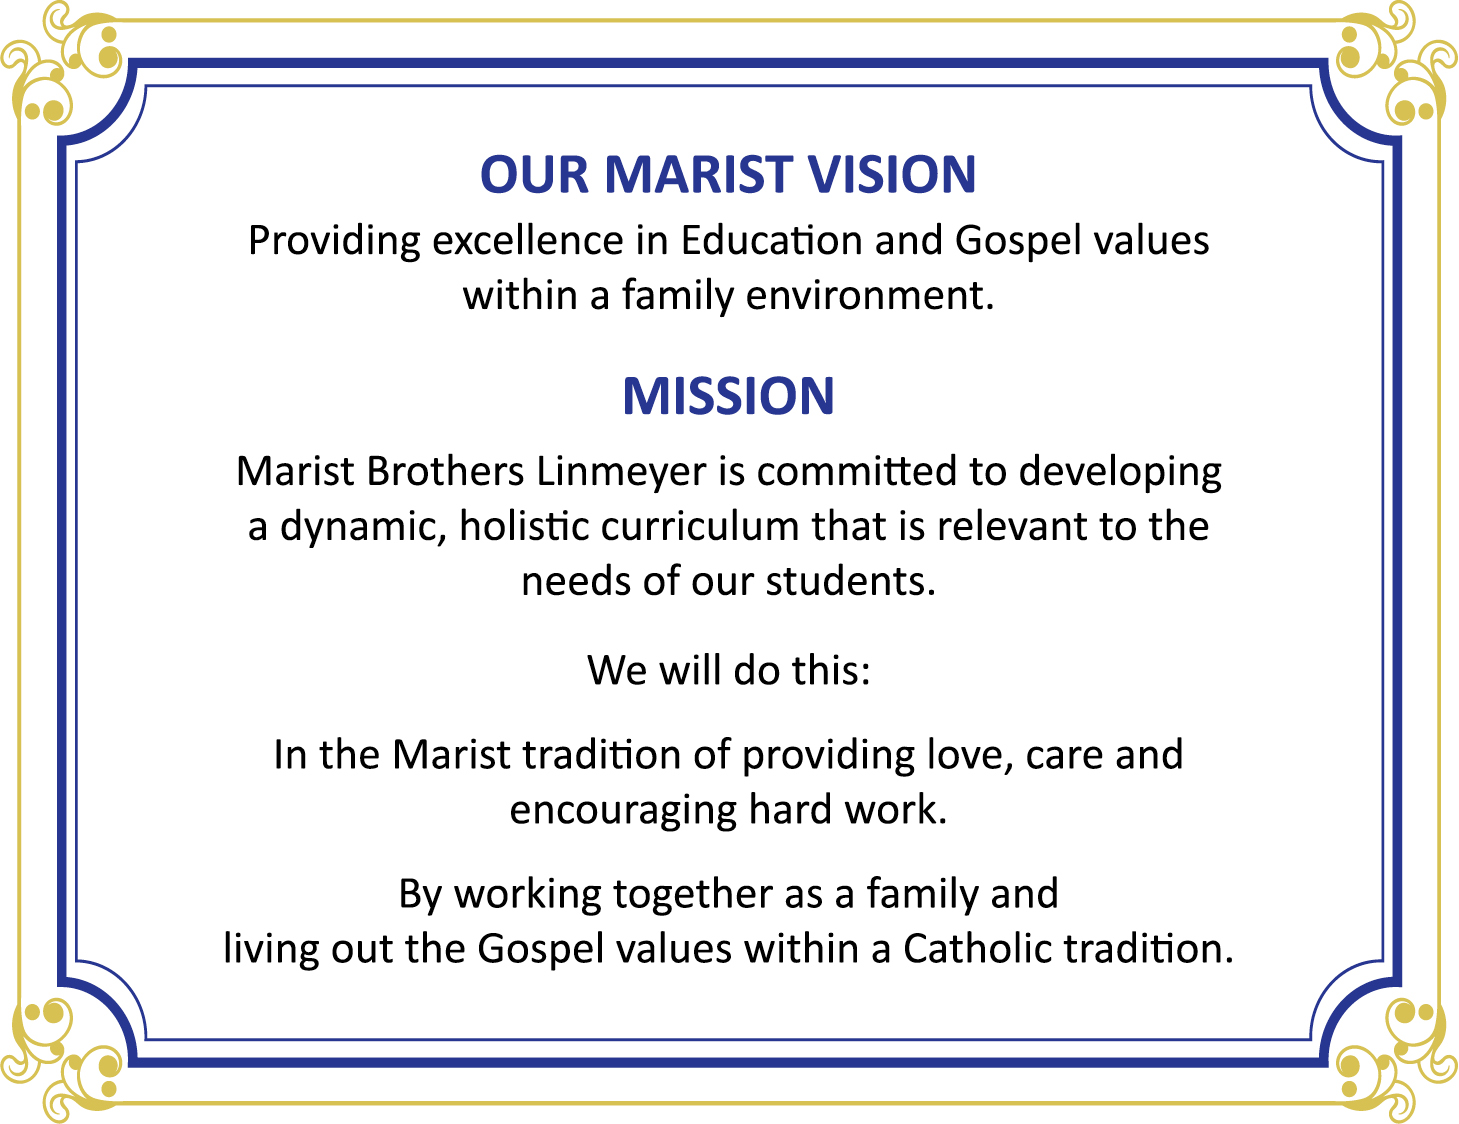 The Marist Brothers Linmeyer Mission & Vision